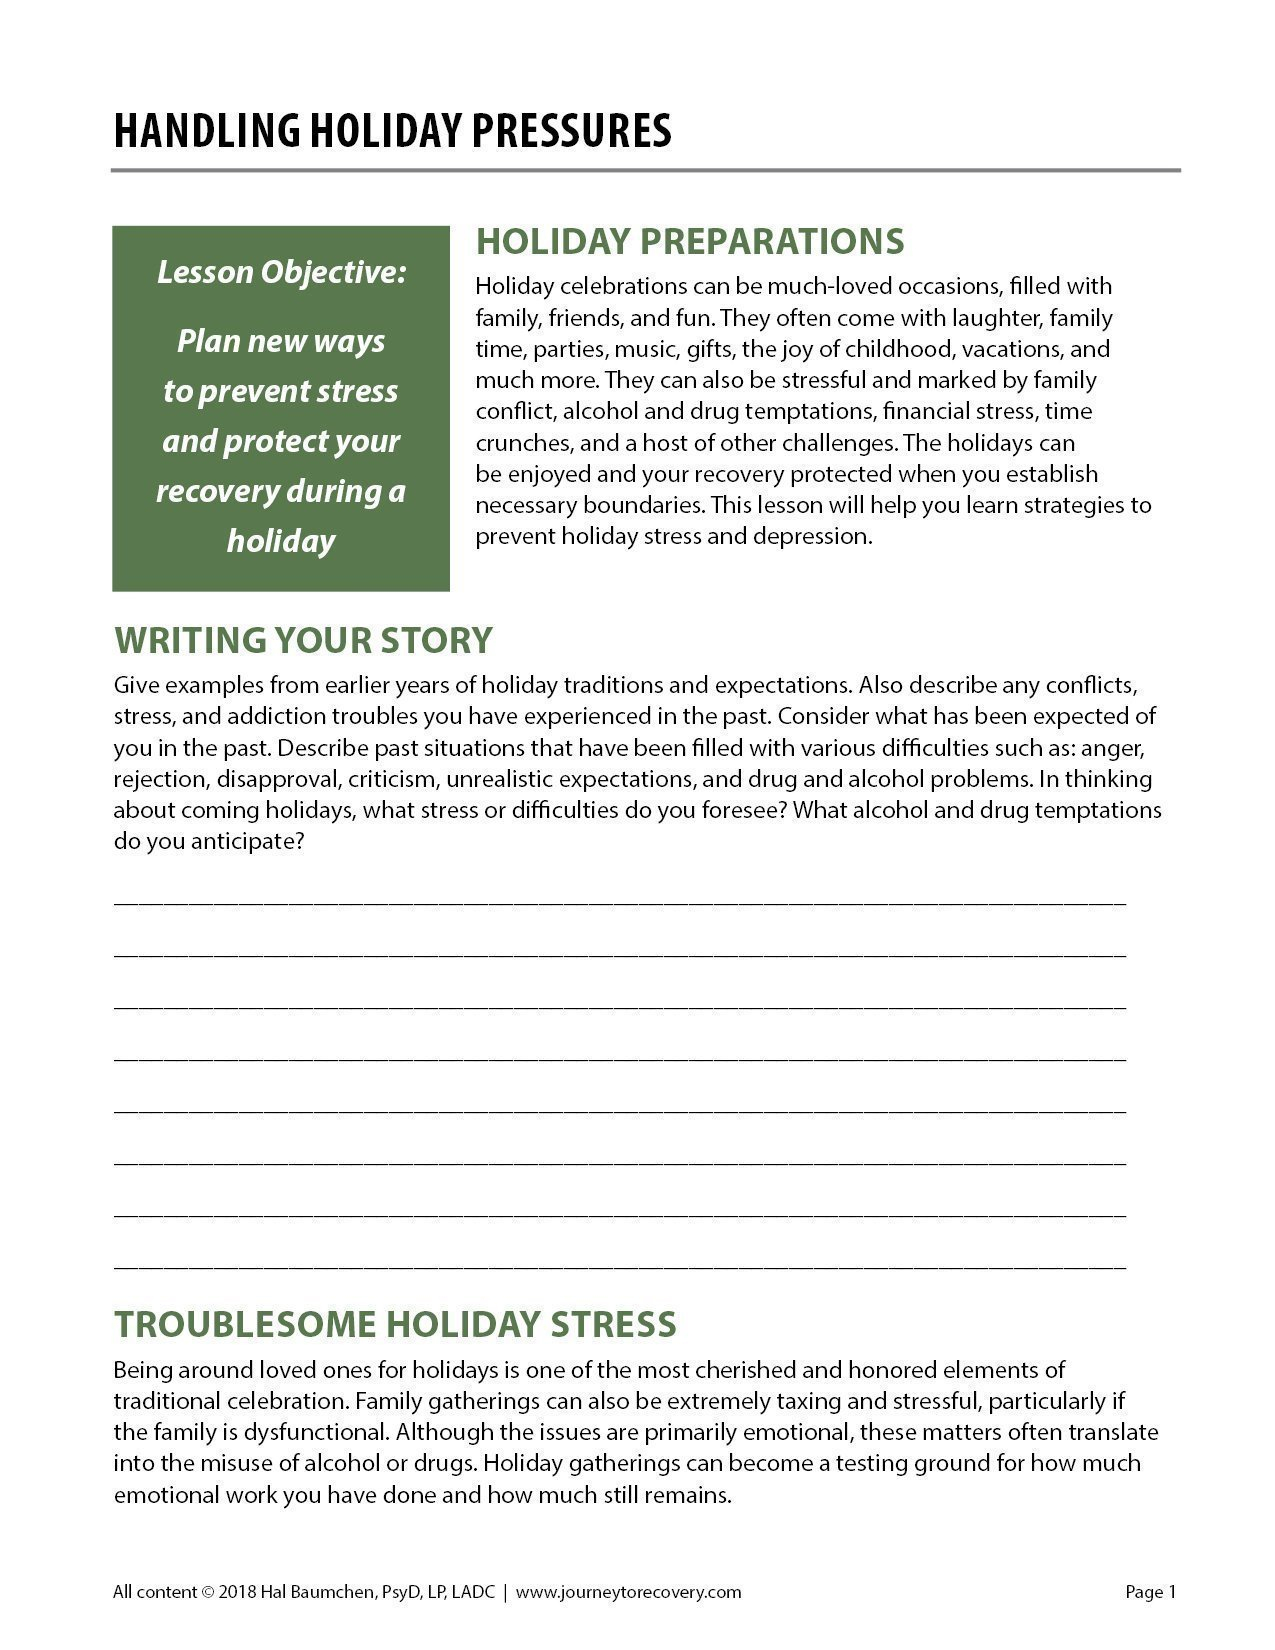 Handling Holiday Pressures Cod Worksheet  Journey To Recovery Regarding Holidays And Recovery Worksheet